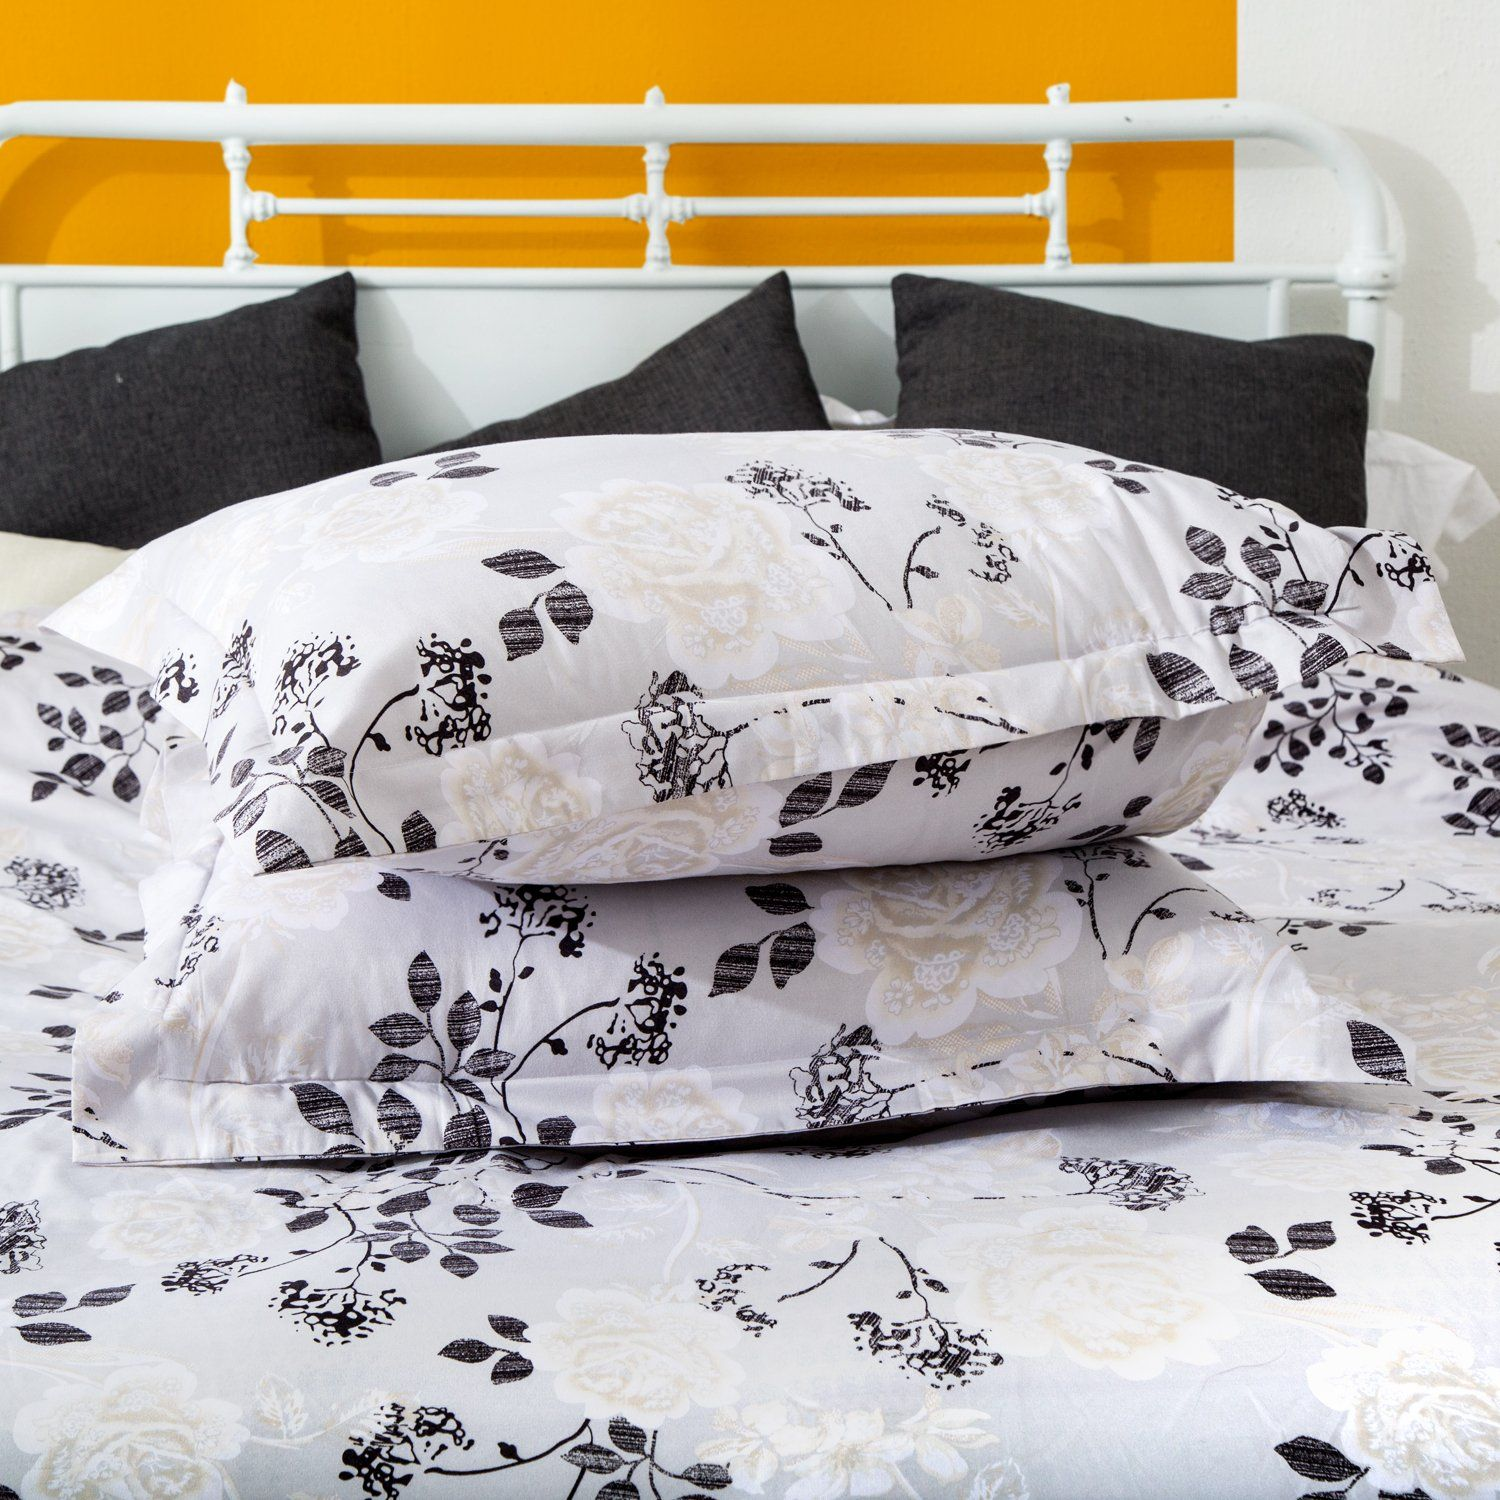 Duvet Cover And Pillow Shams 3 Piece Bedding Sets Hypoallergenic